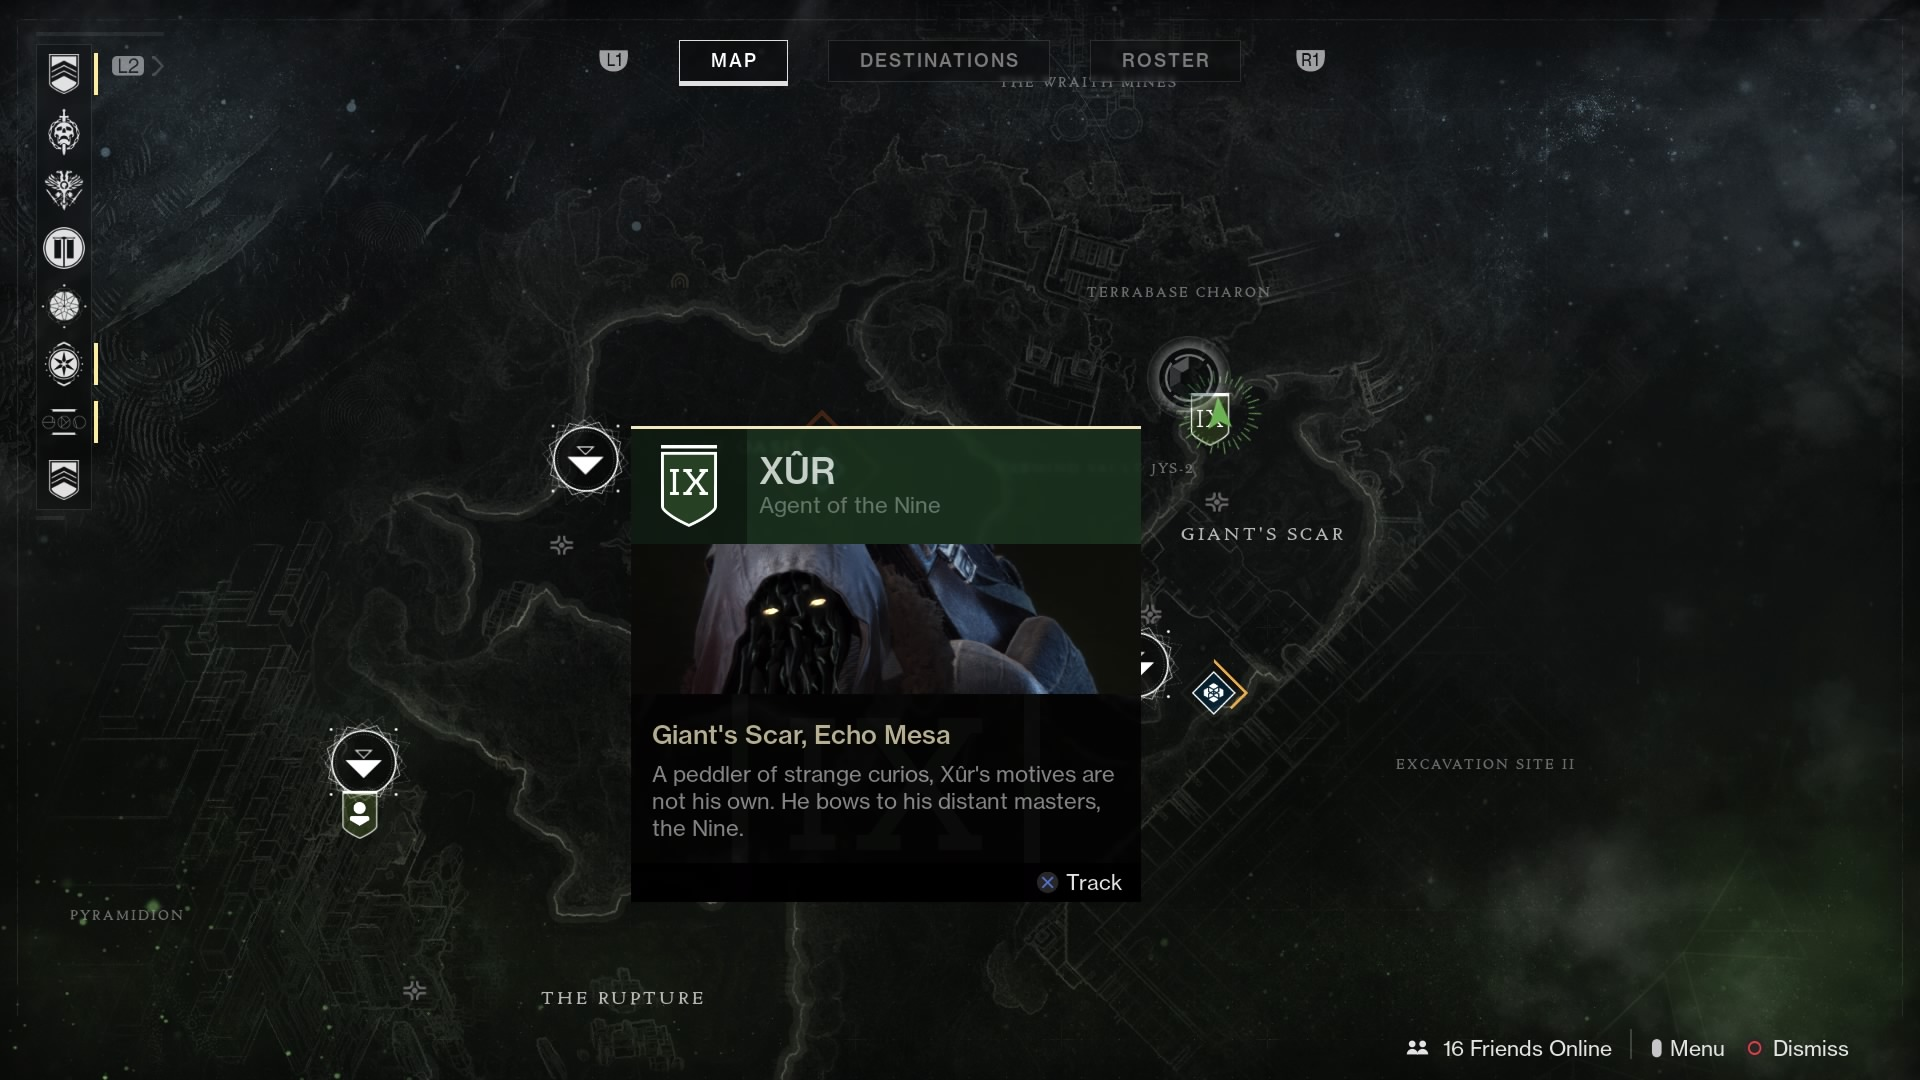 Destiny 2 Xur Item And Location Guide (Feb. 9-13)